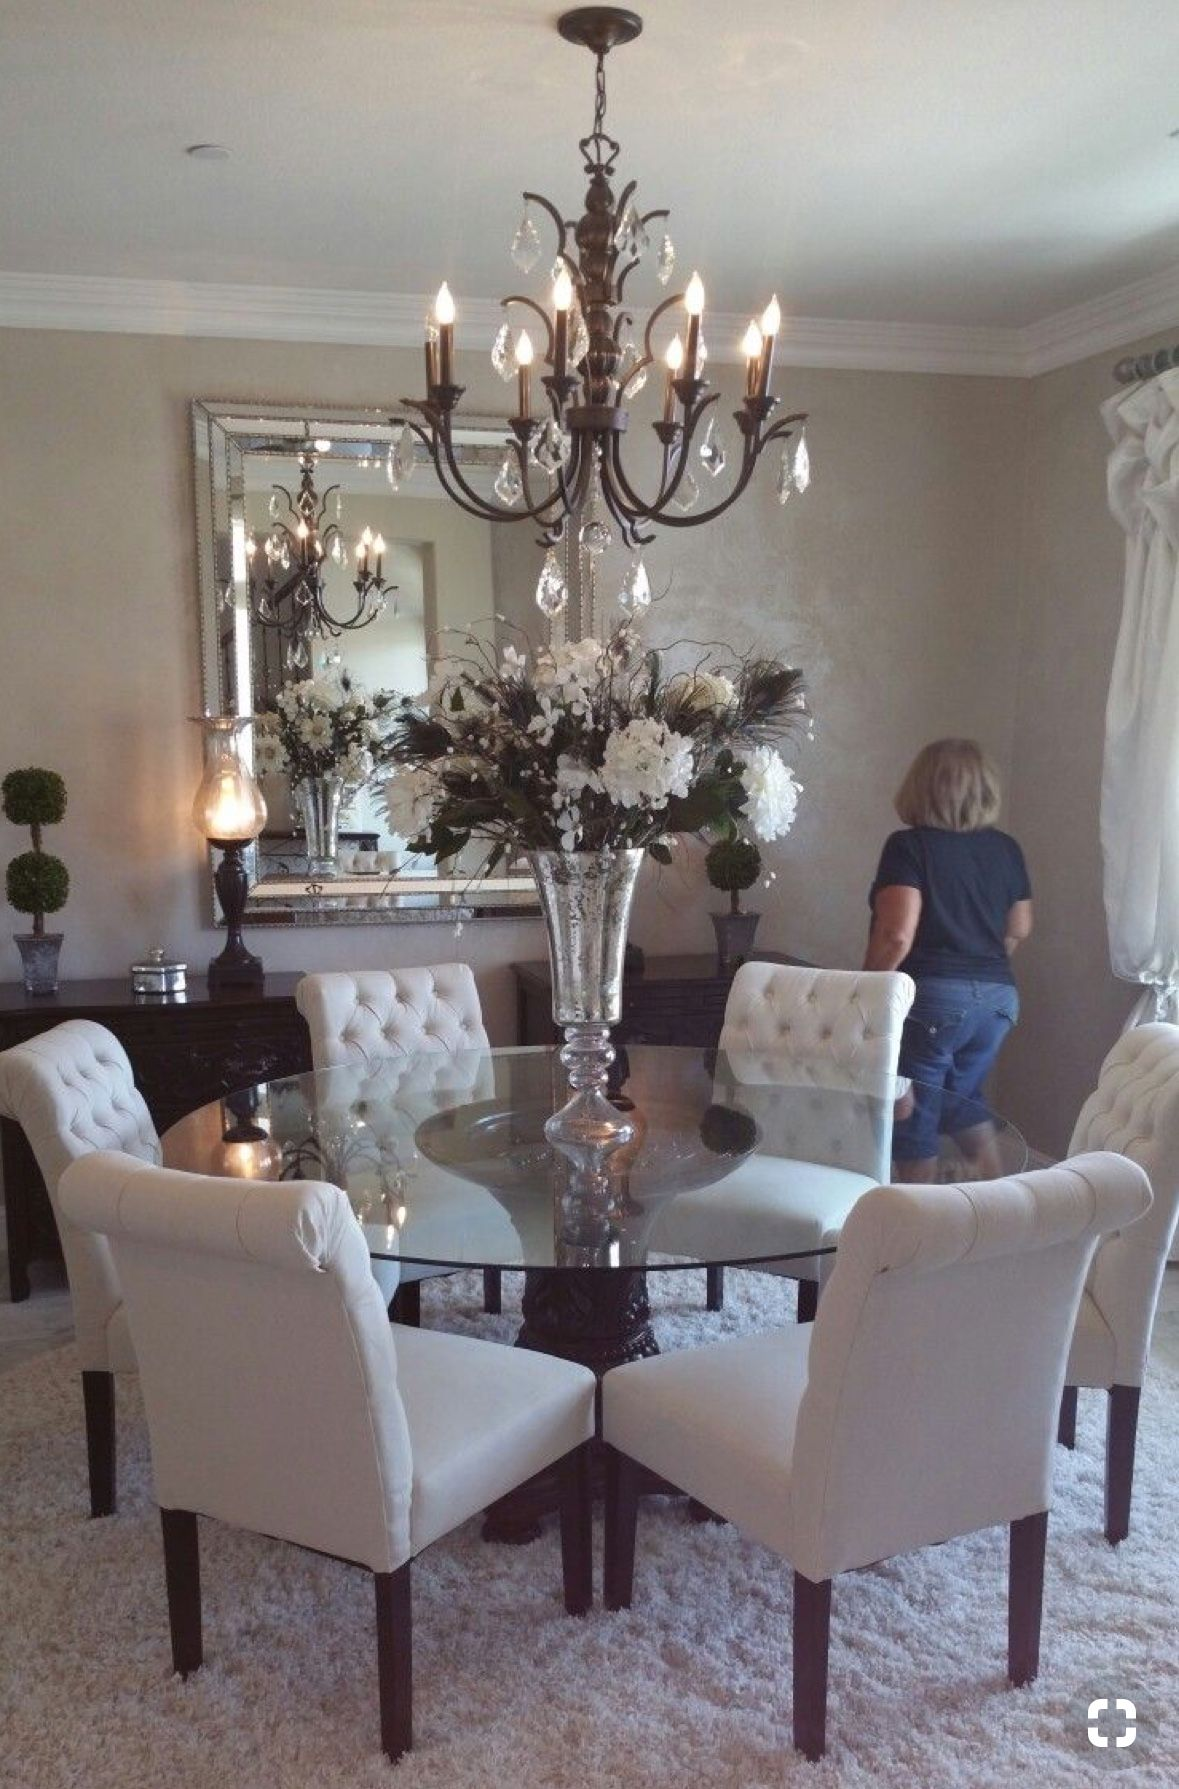 Pin By Billie Saunders On Dining Room Stuff Dinning Room Decor